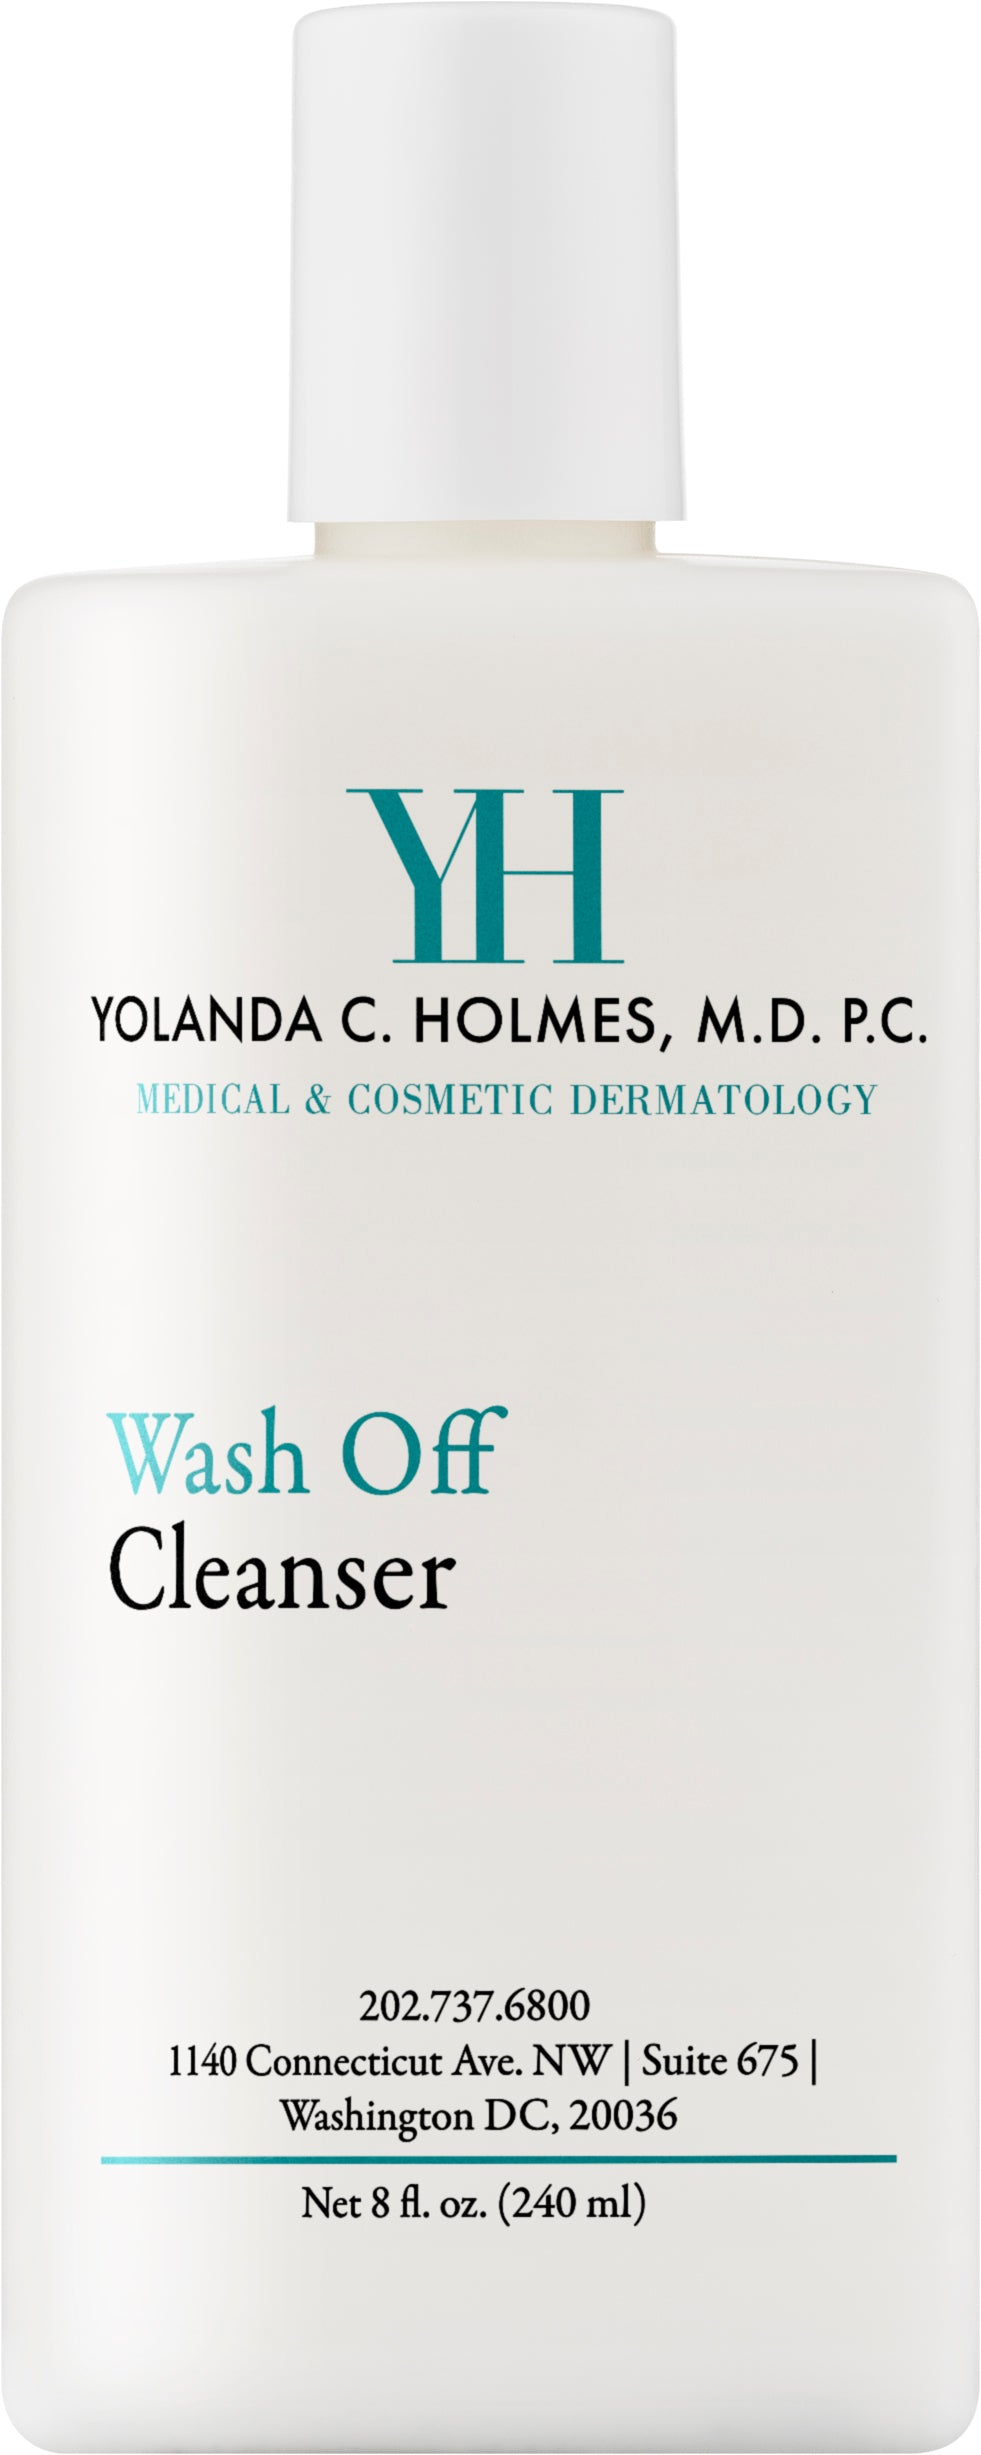 Wash Off Cleanser